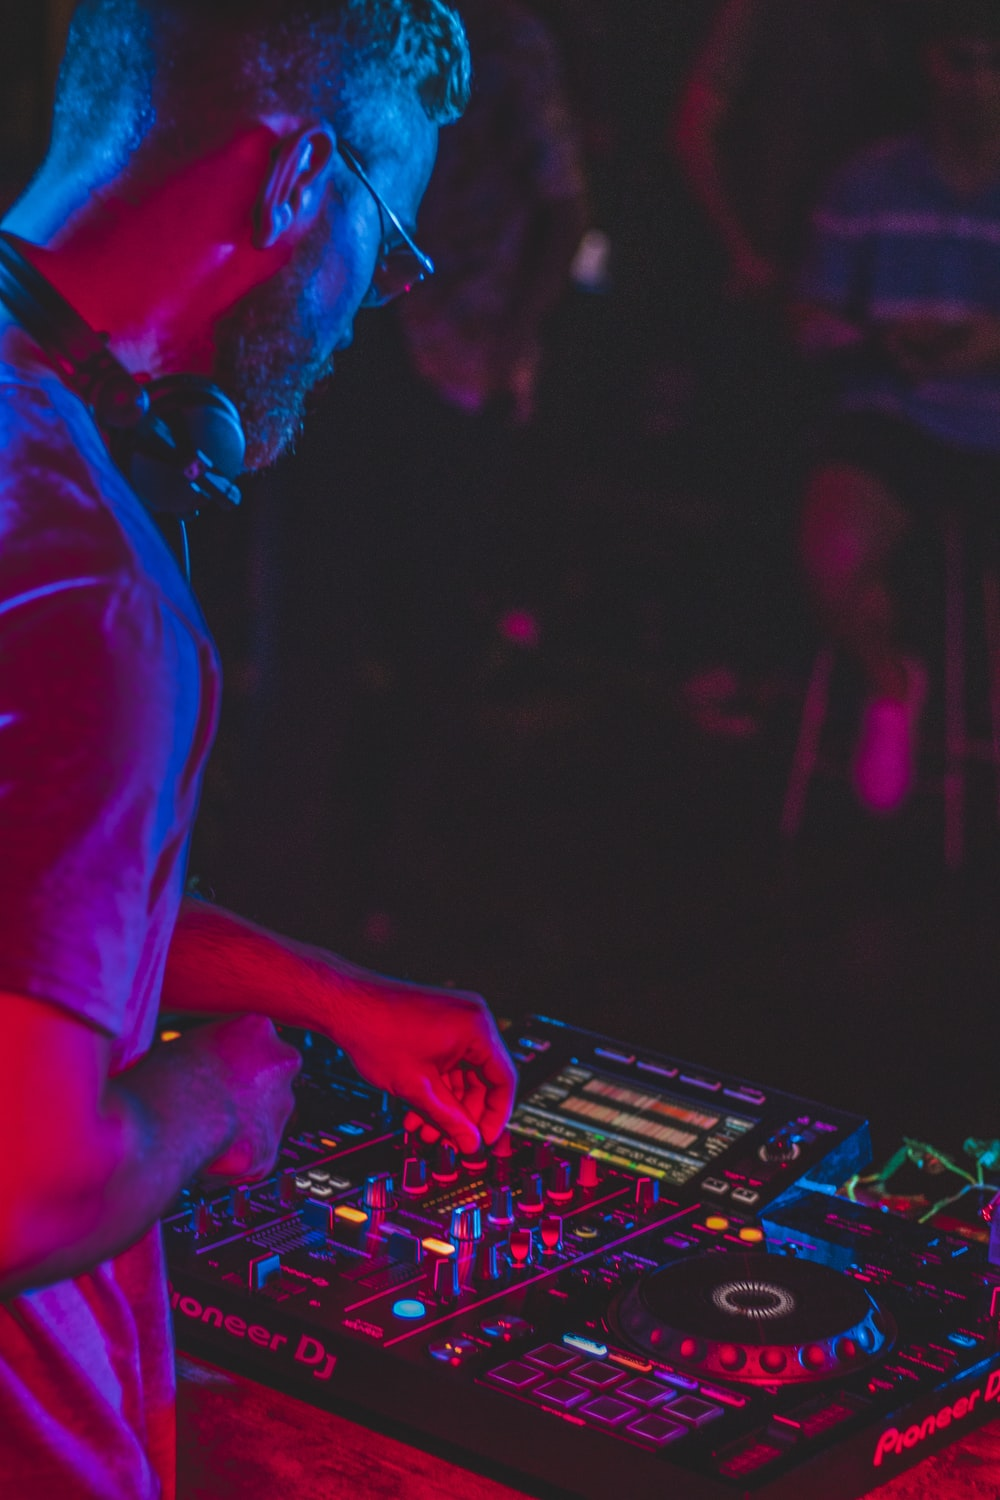 person playing audio mixer in concert